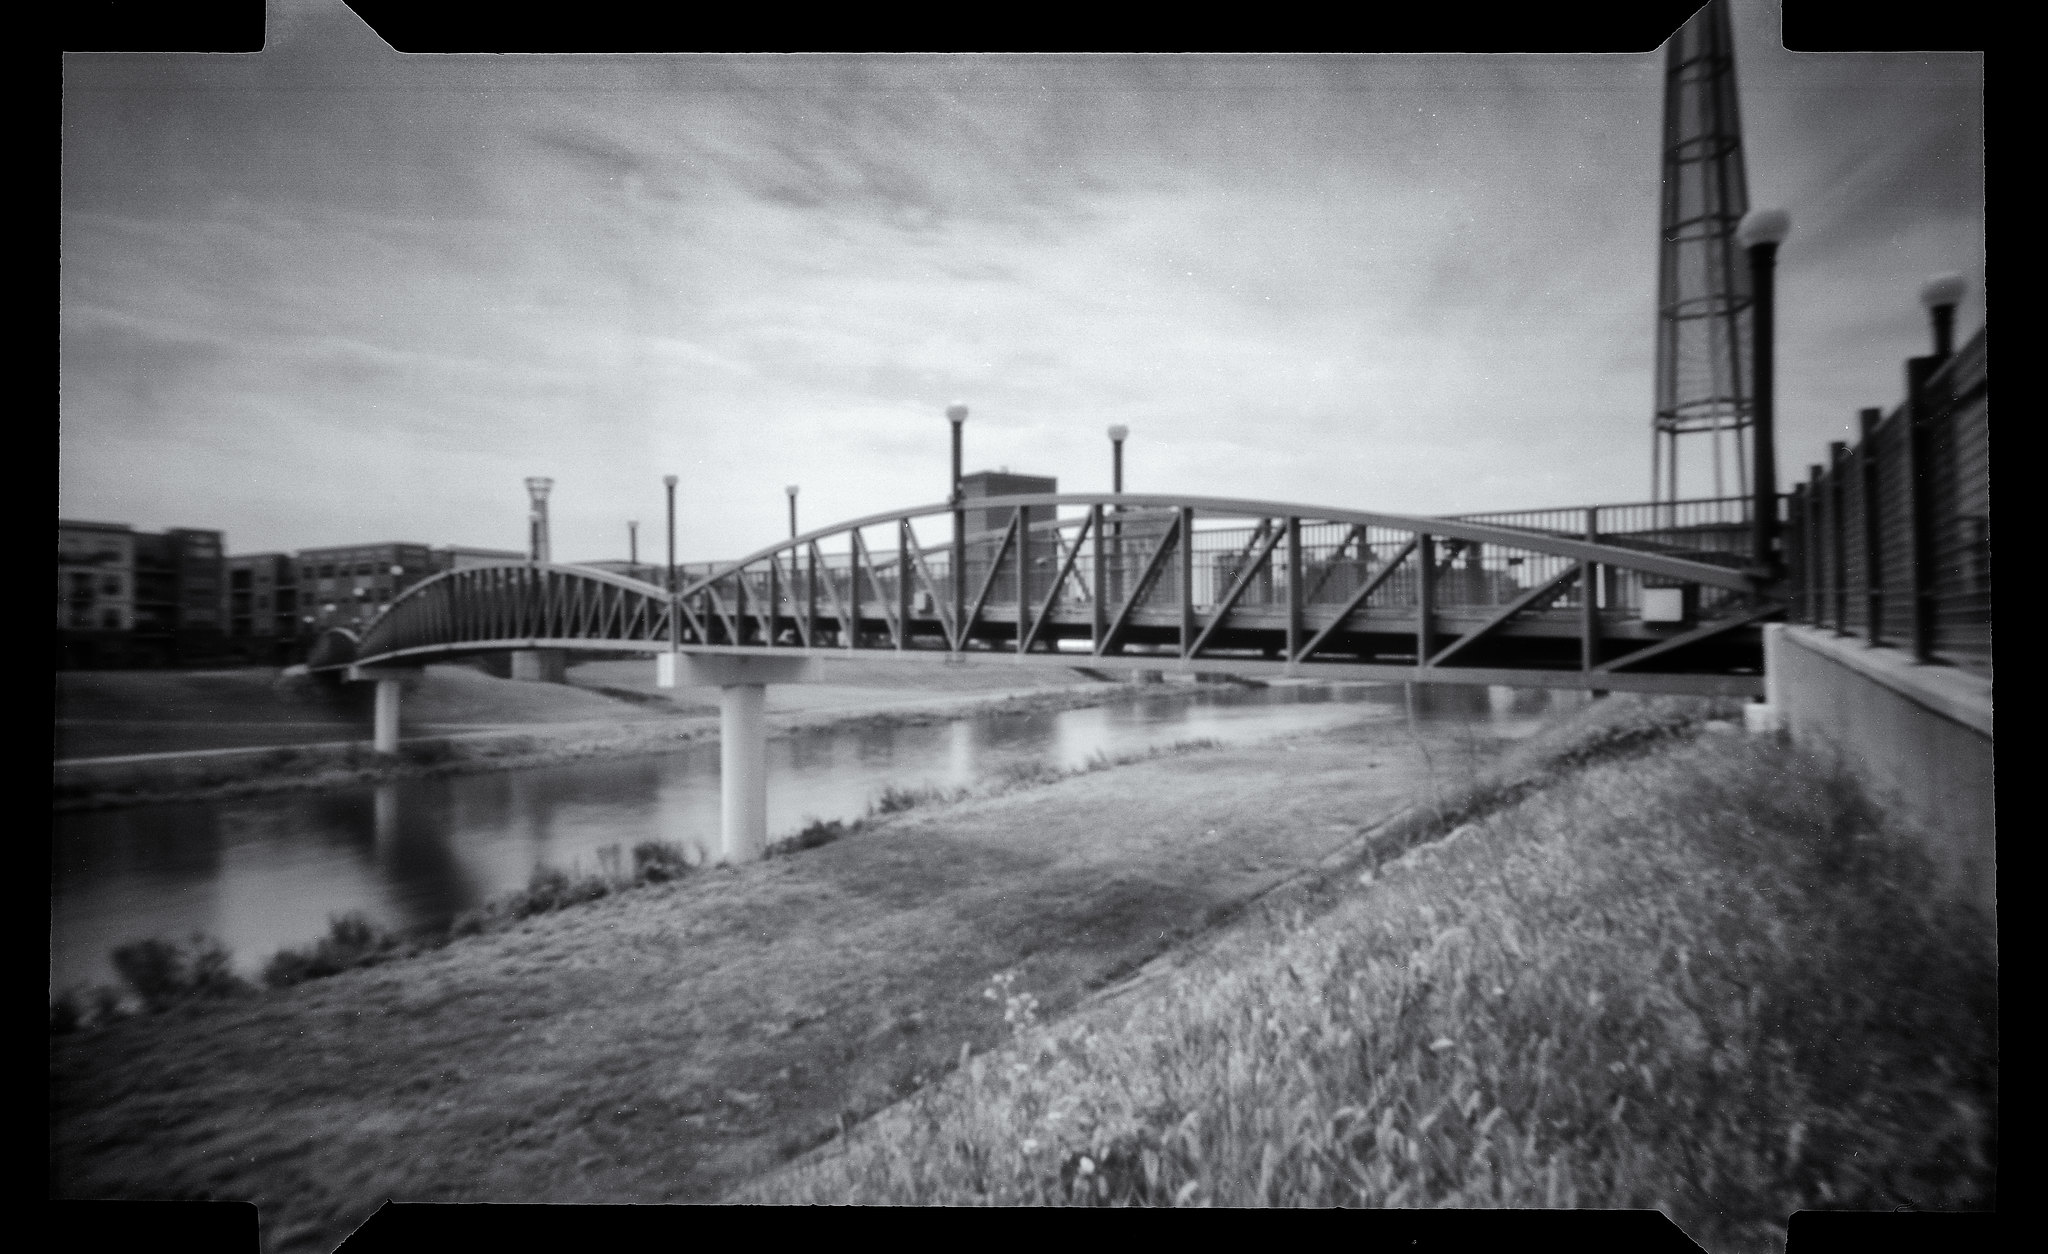 Bridge to Dayton - NOON 612 Pinhole Camera with Fuji ACROS 100 film